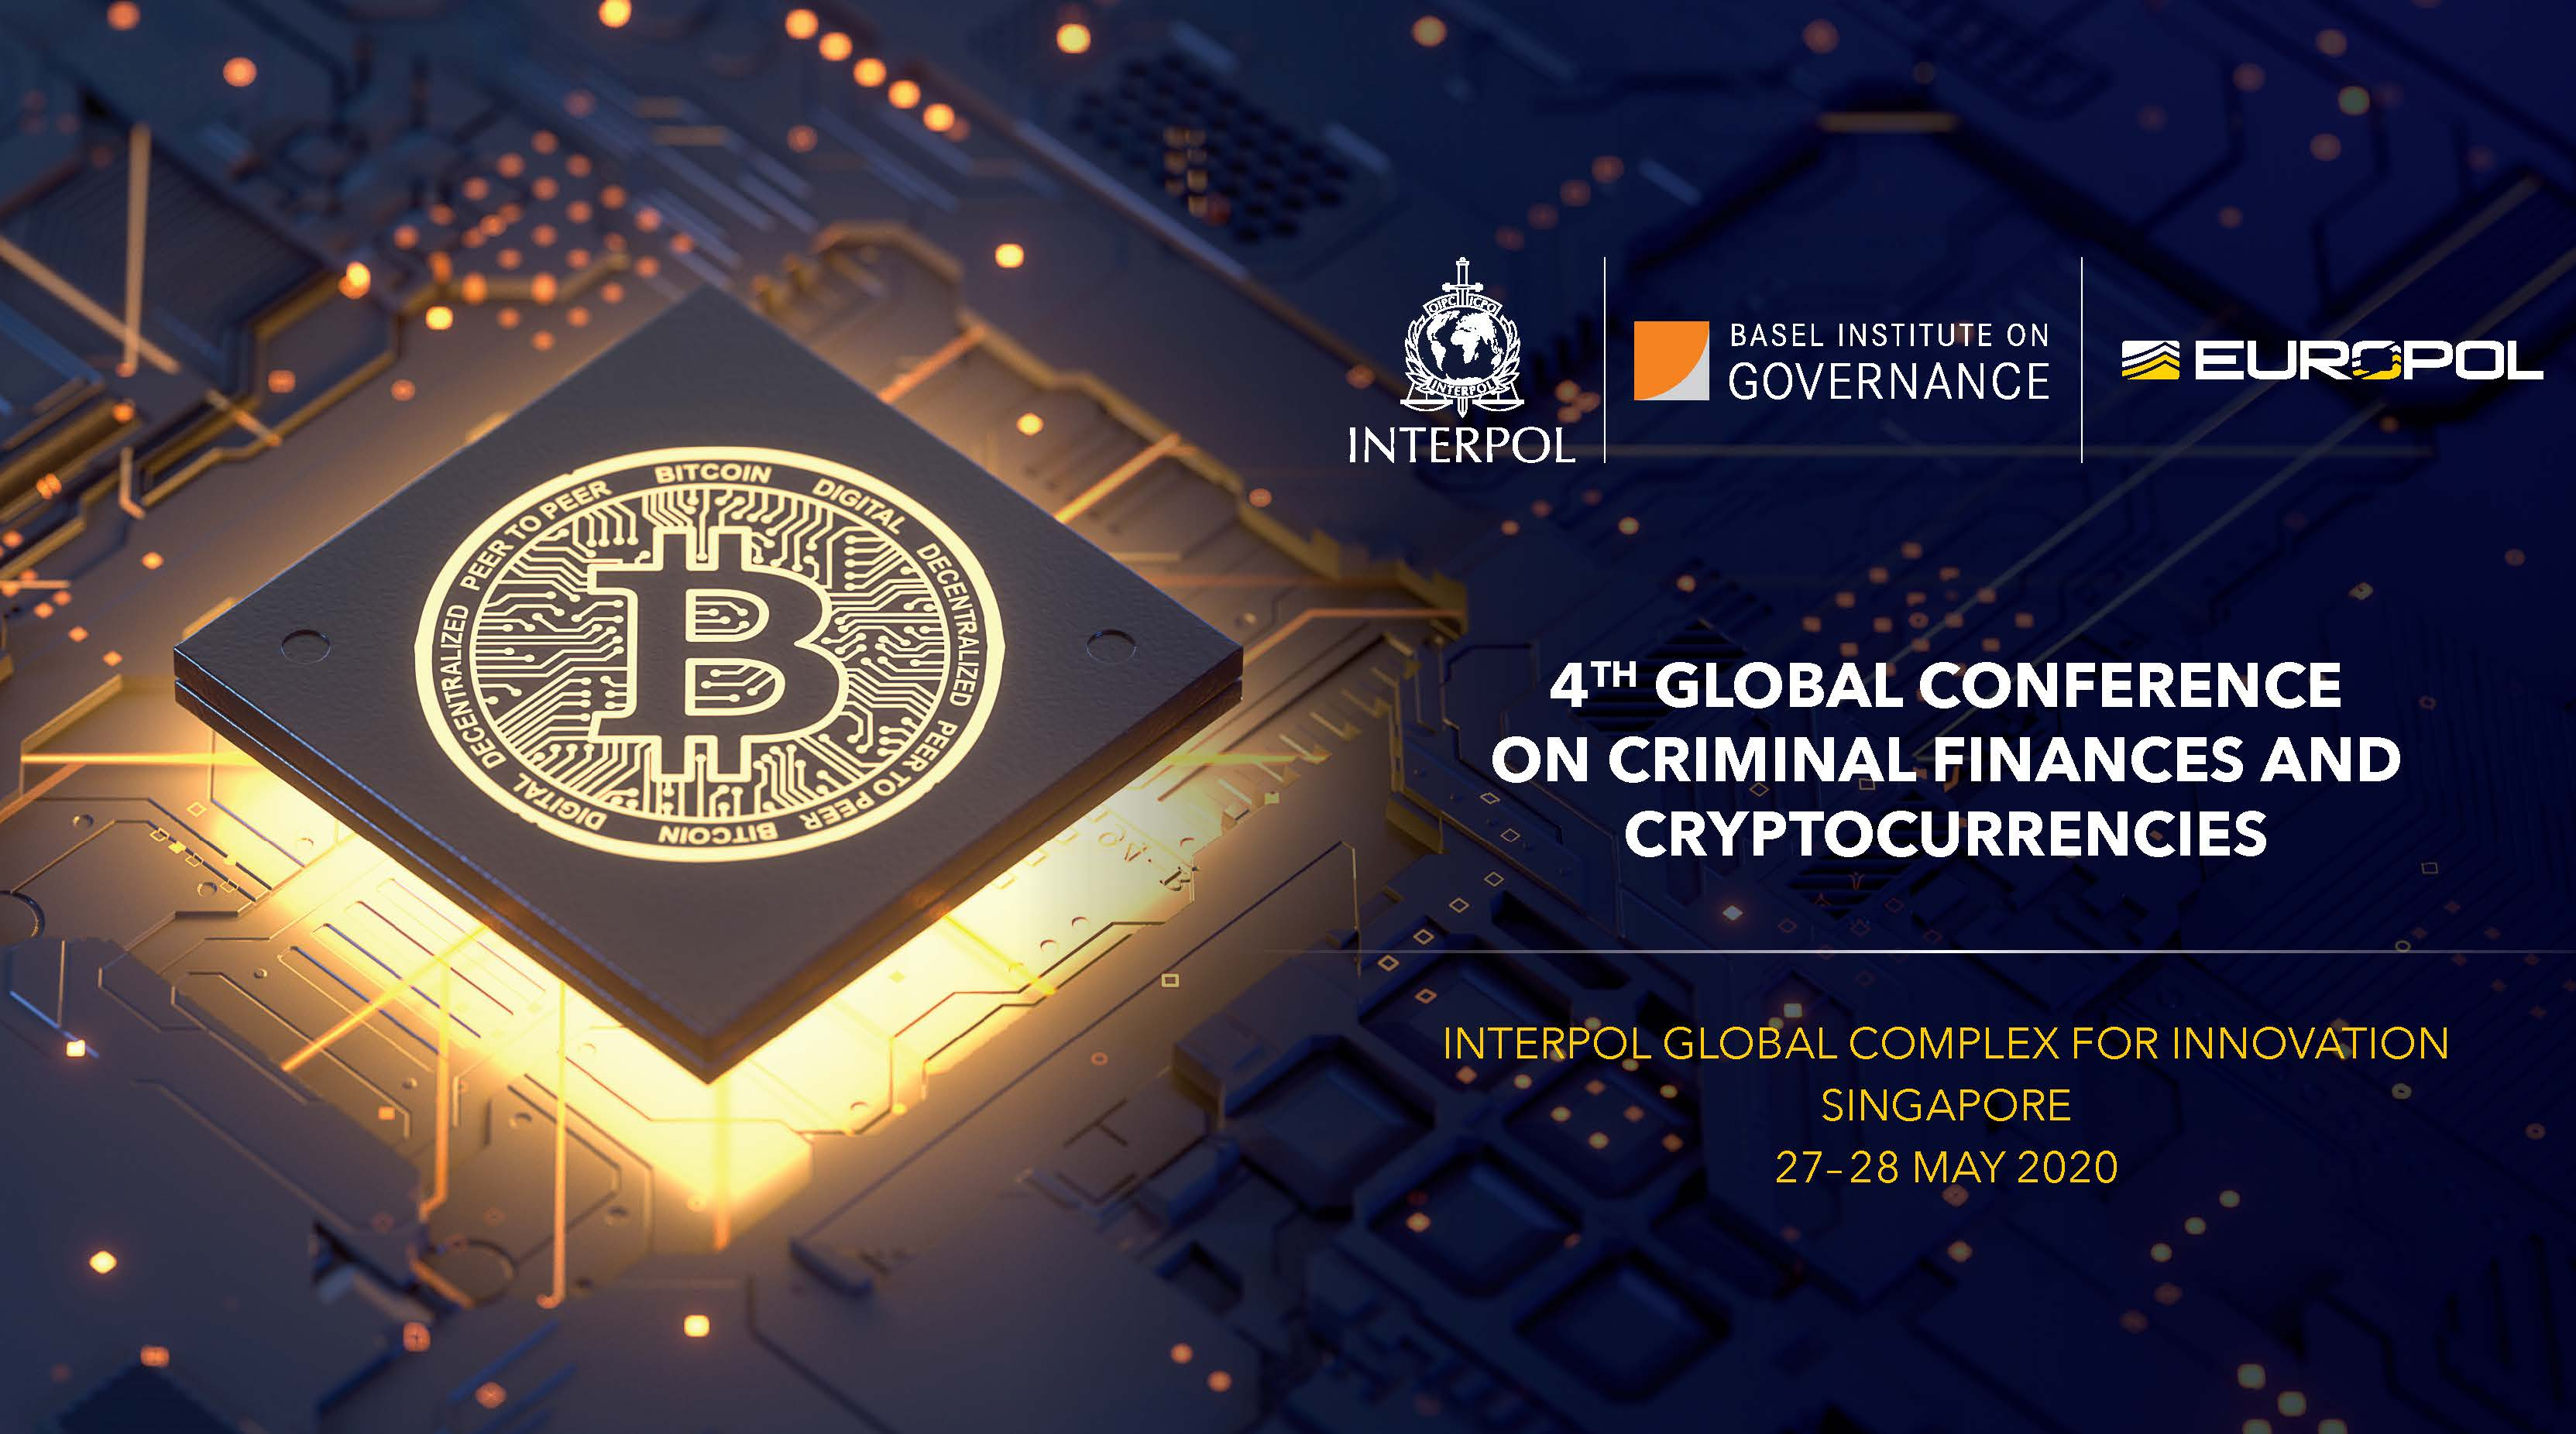 4th Global Conference on Criminal Finances and Cryptocurrencies flyer